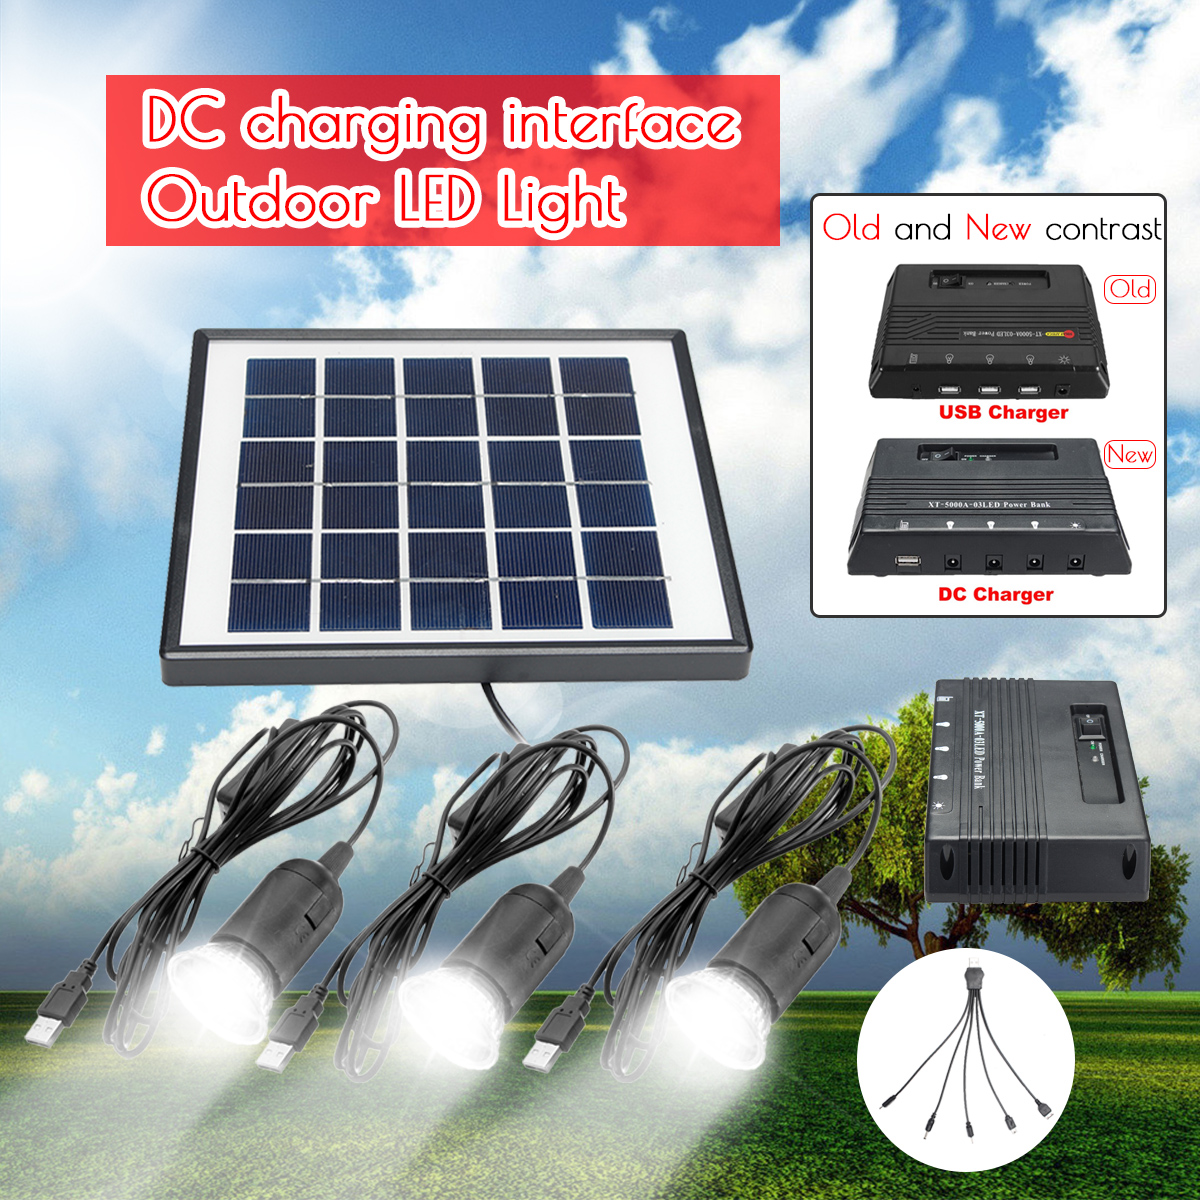 3pcs 1W Solar Lamp LED Garden Light Outdoor Lampe Solaire + 6V 4W Solar Panel + 5000mAh DC Power Bank For Outdoor Camping sp5000c environmental protection energy saving 5000mah solar charger power bank black